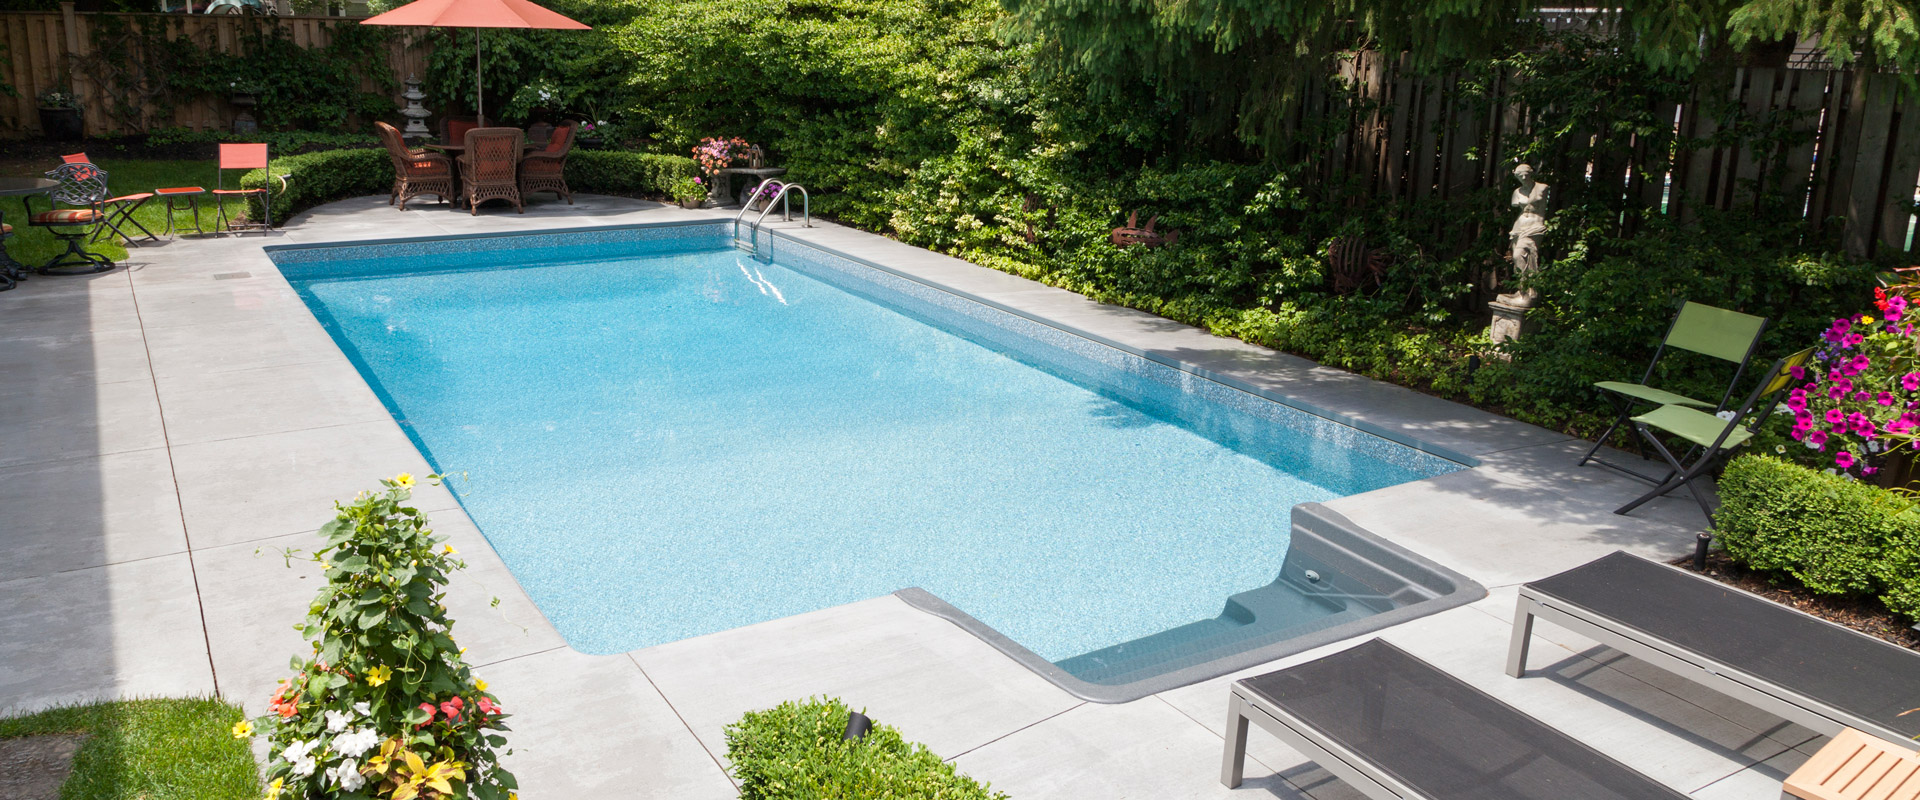 The De Graafs Inground Pool Showcase Boldt Pools Amp Spas